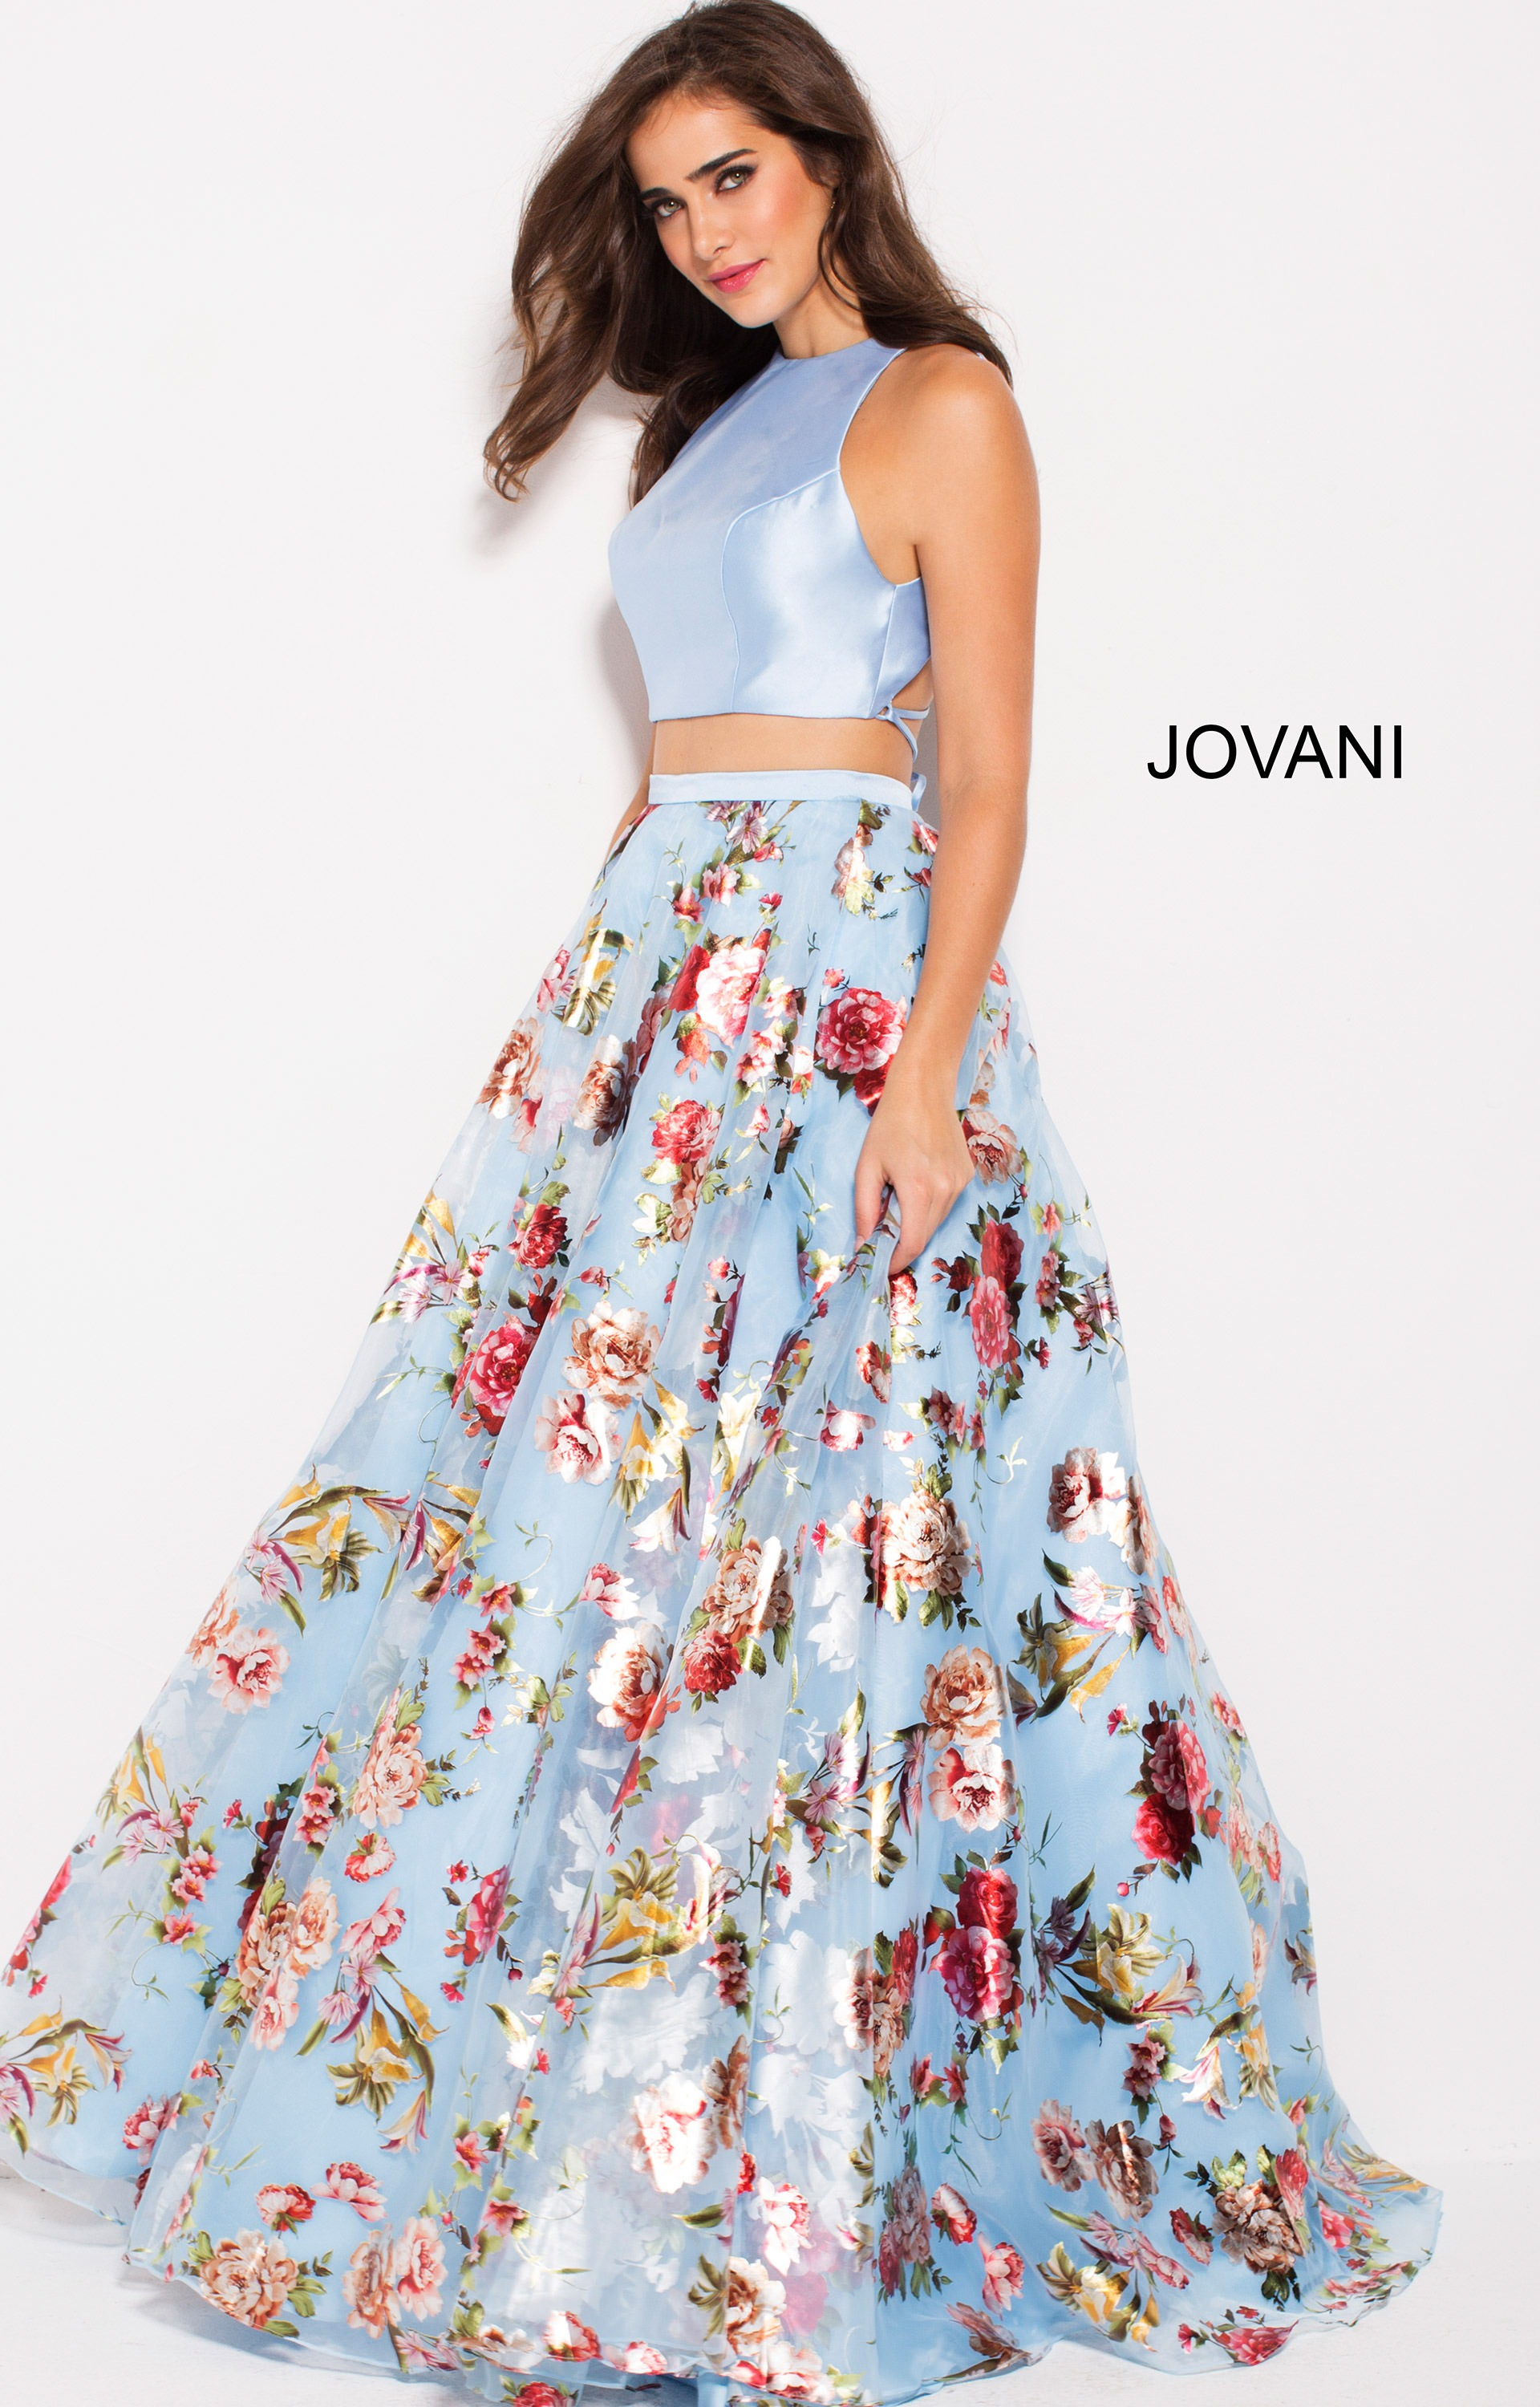 da092a4bbf92 Jovani 60570 - High Neckline 2 Piece Open Back Ball Gown Dress